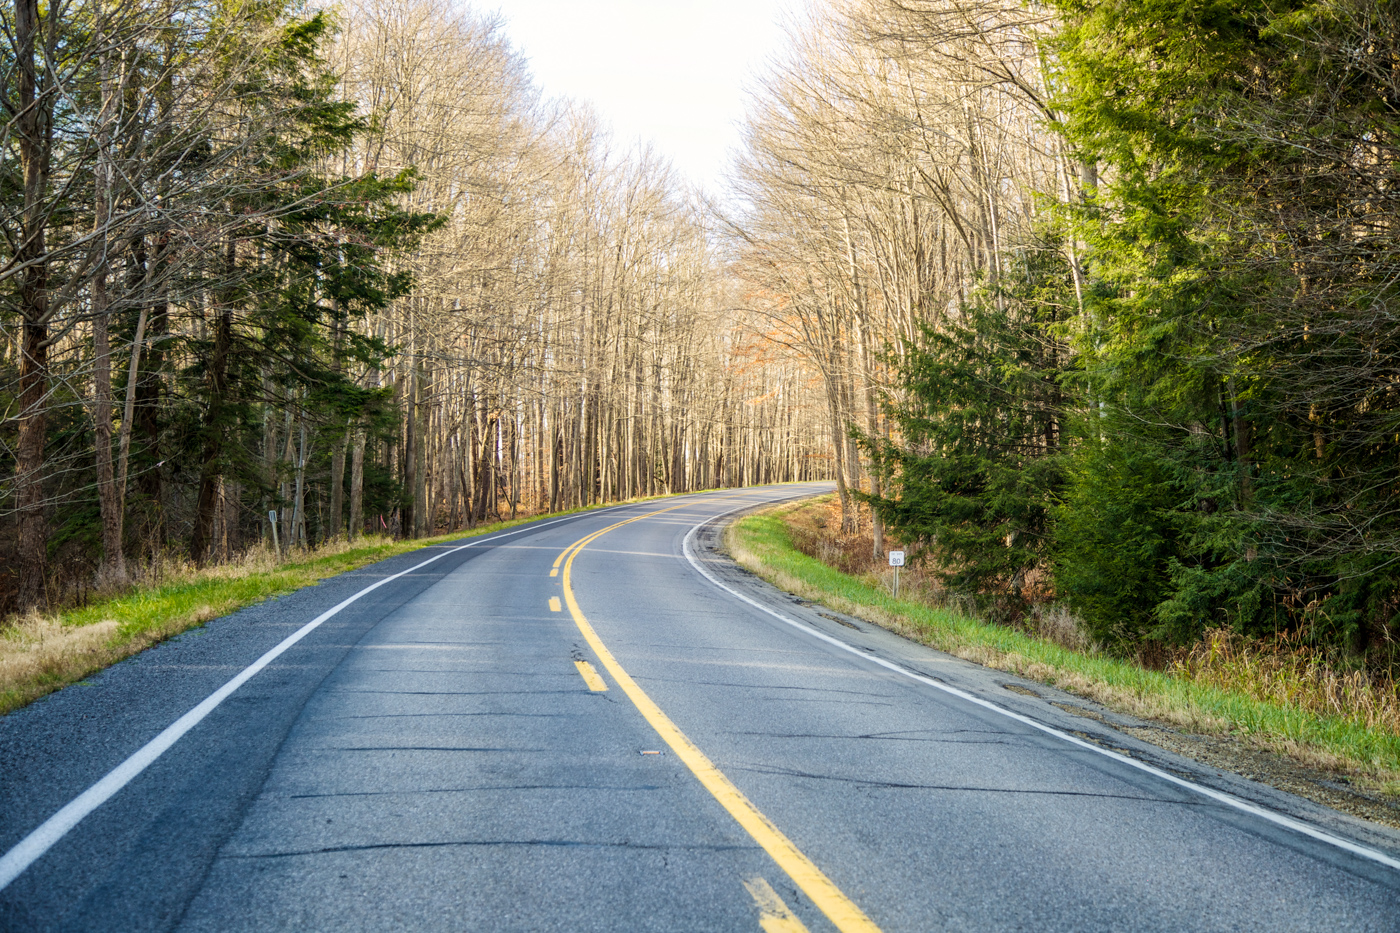 Road through Allegheny National Forest